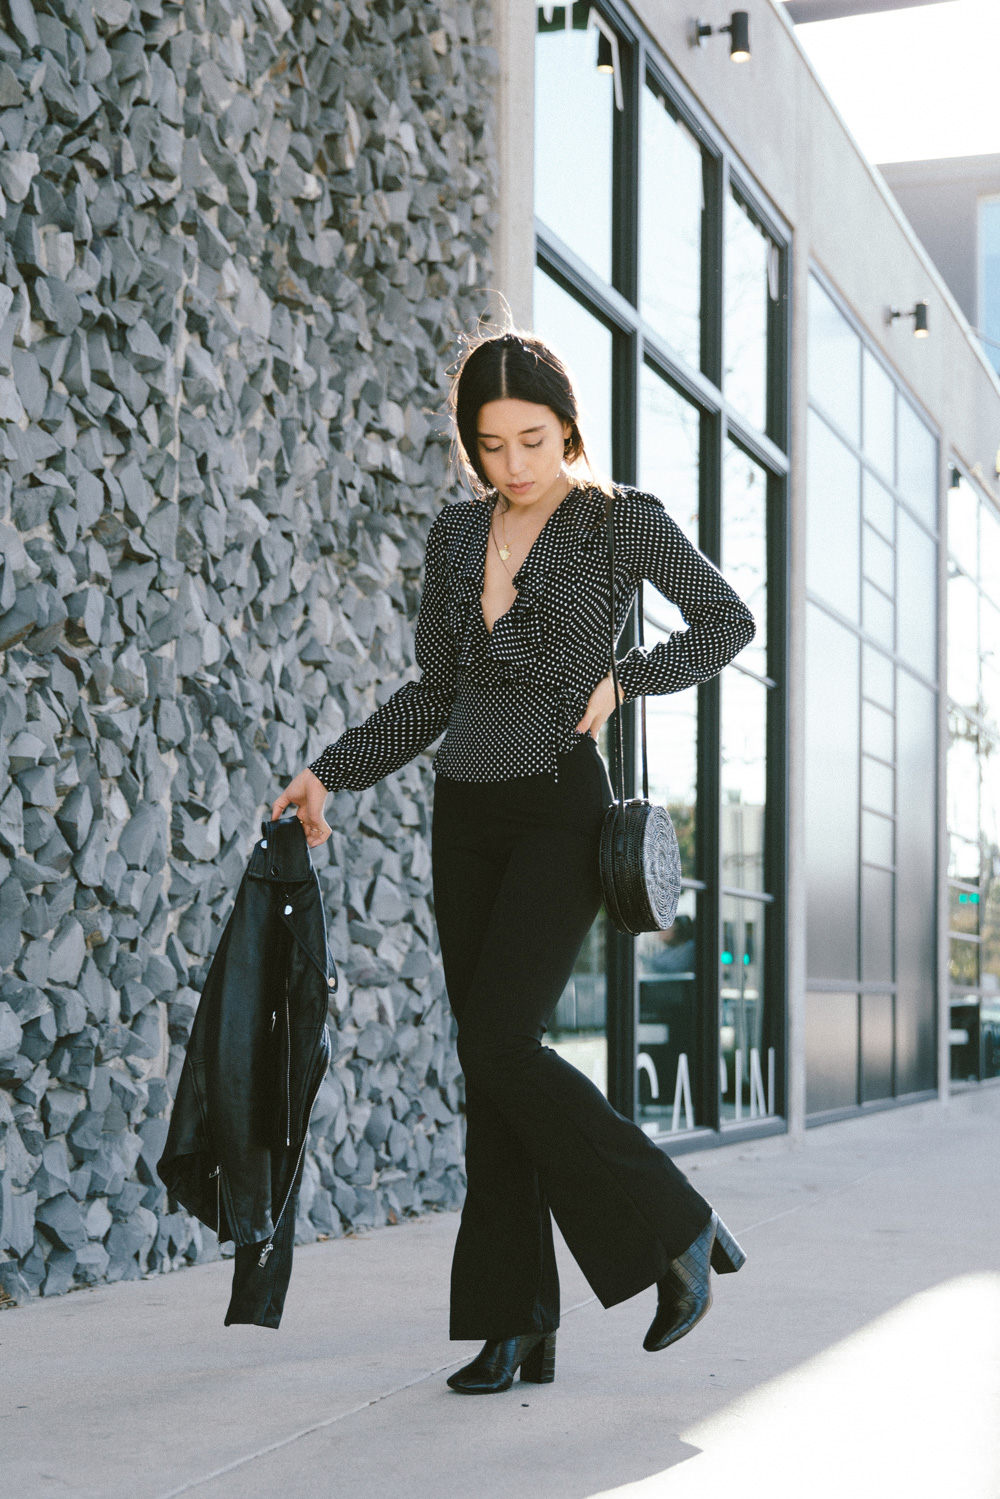 LOVE OR MONEY by Emily Tong wearing polka dot top and flare pants